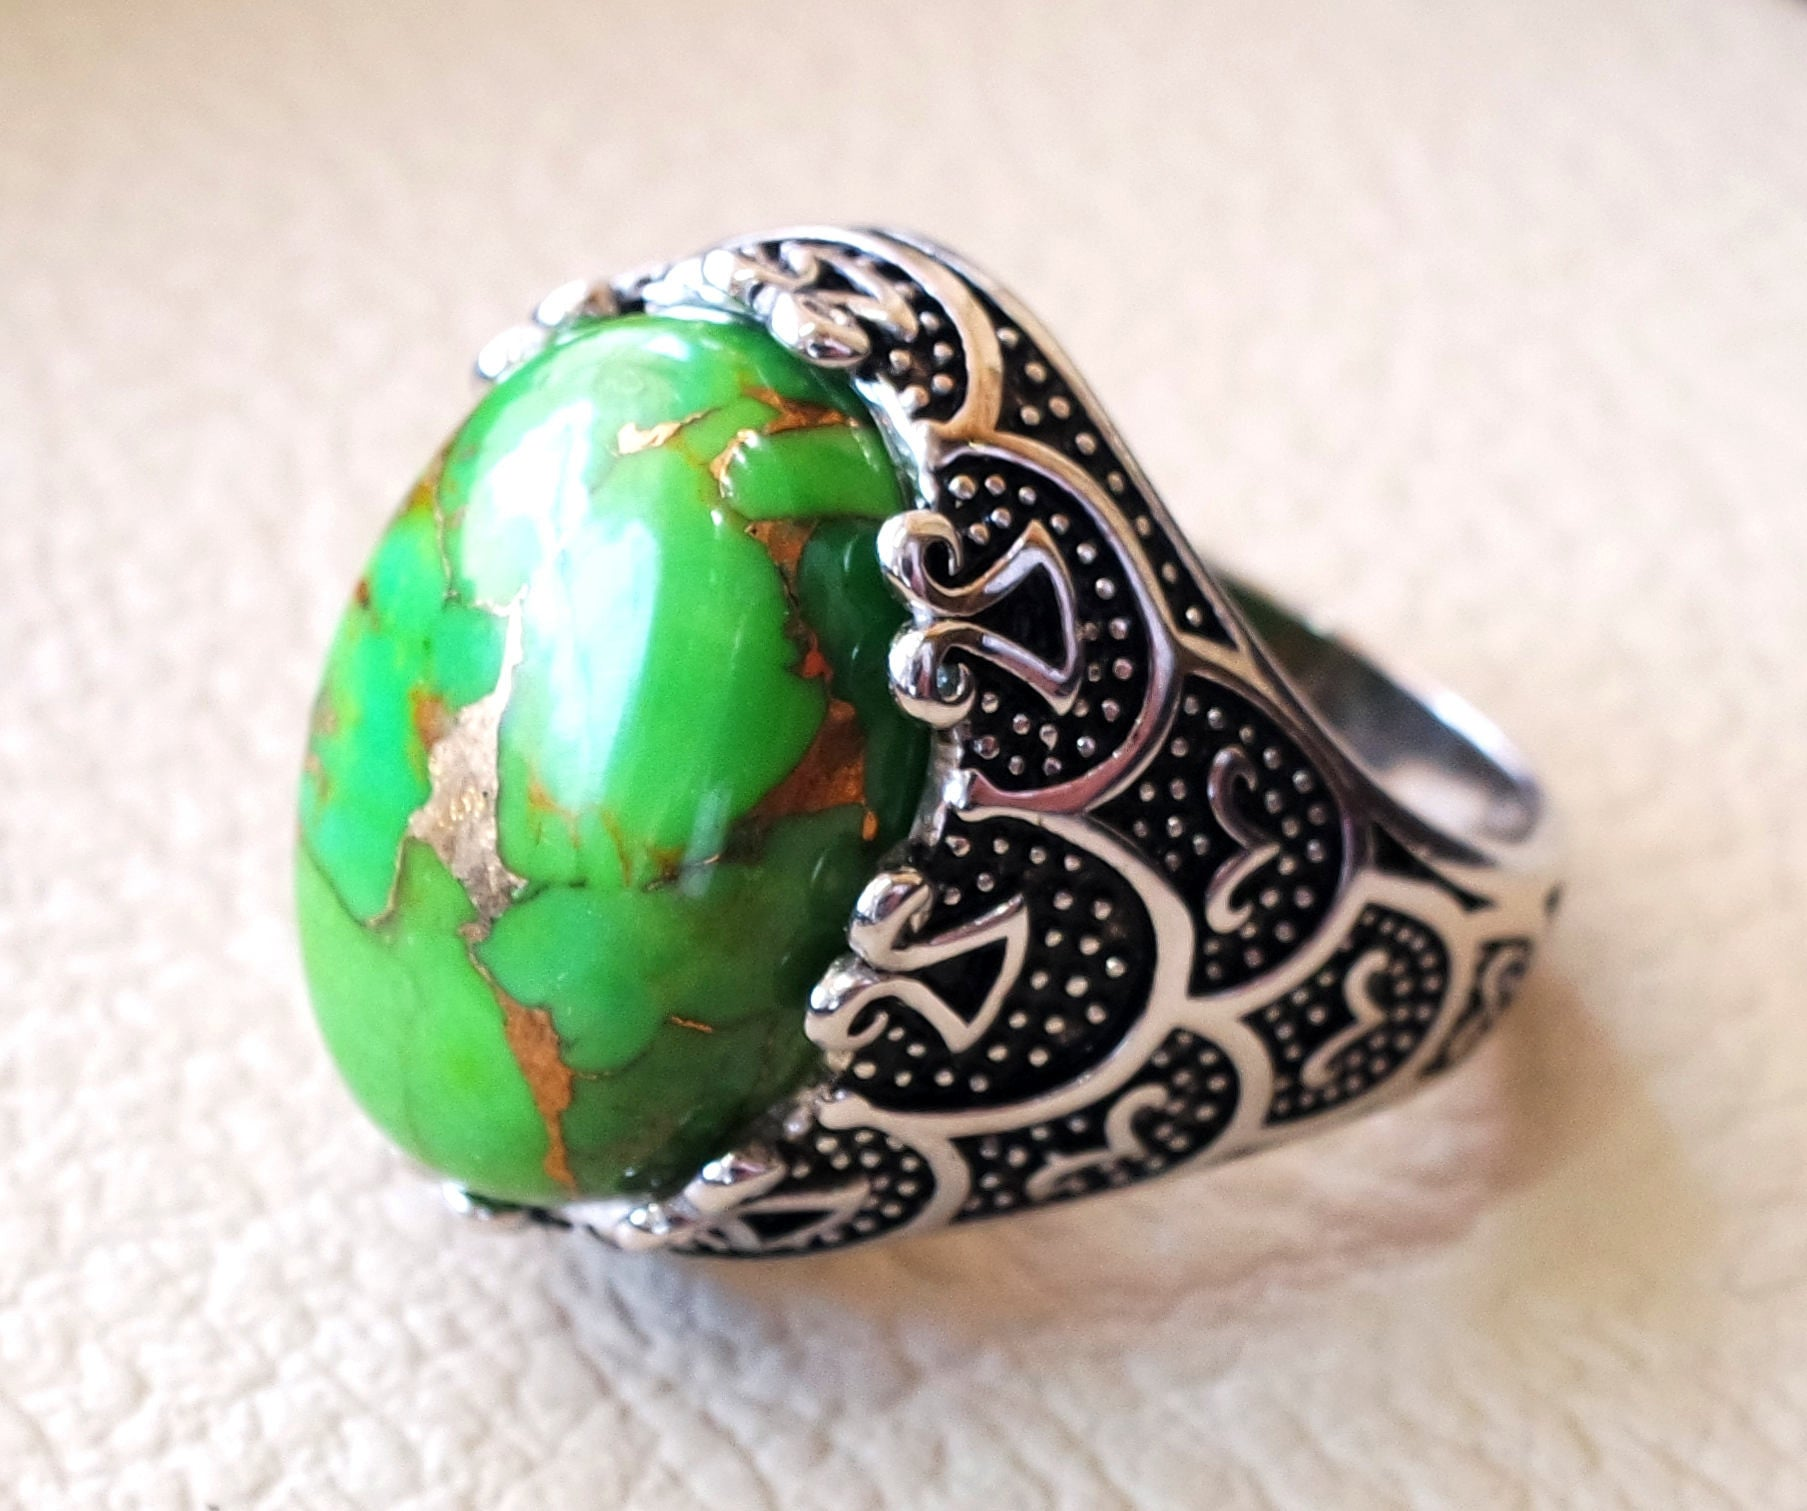 green copper turquoise natural stone detailed men ring sterling silver 925 stunning genuine gem ottoman arabic style jewelry all sizes